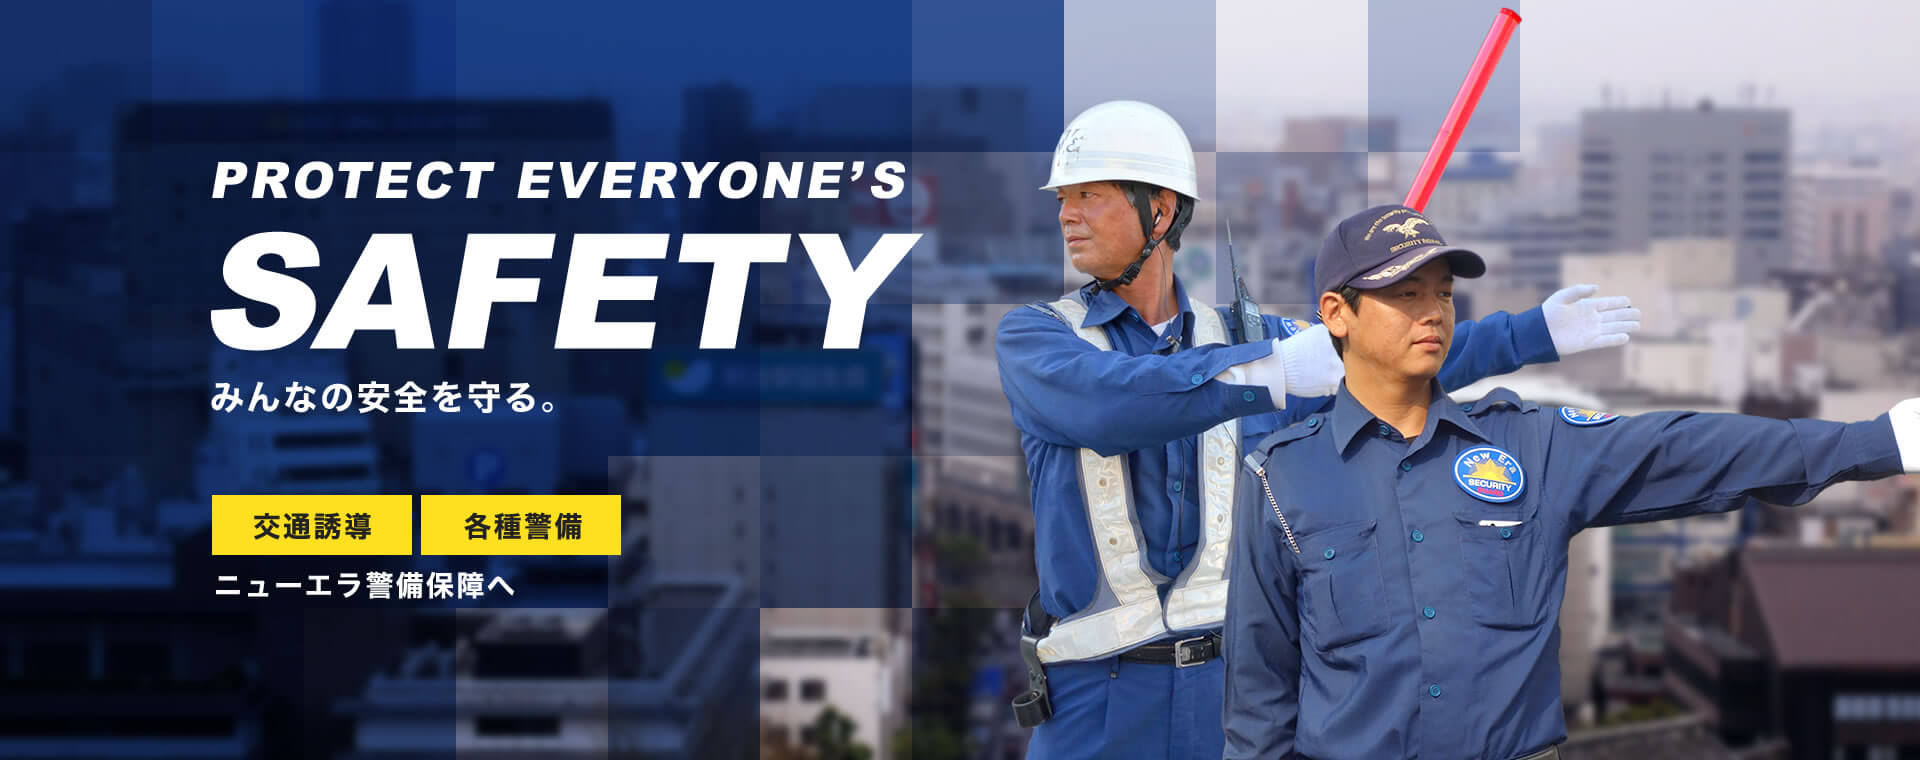 PROTECT EVERYONE'S SAFETY みんなの安全を守る